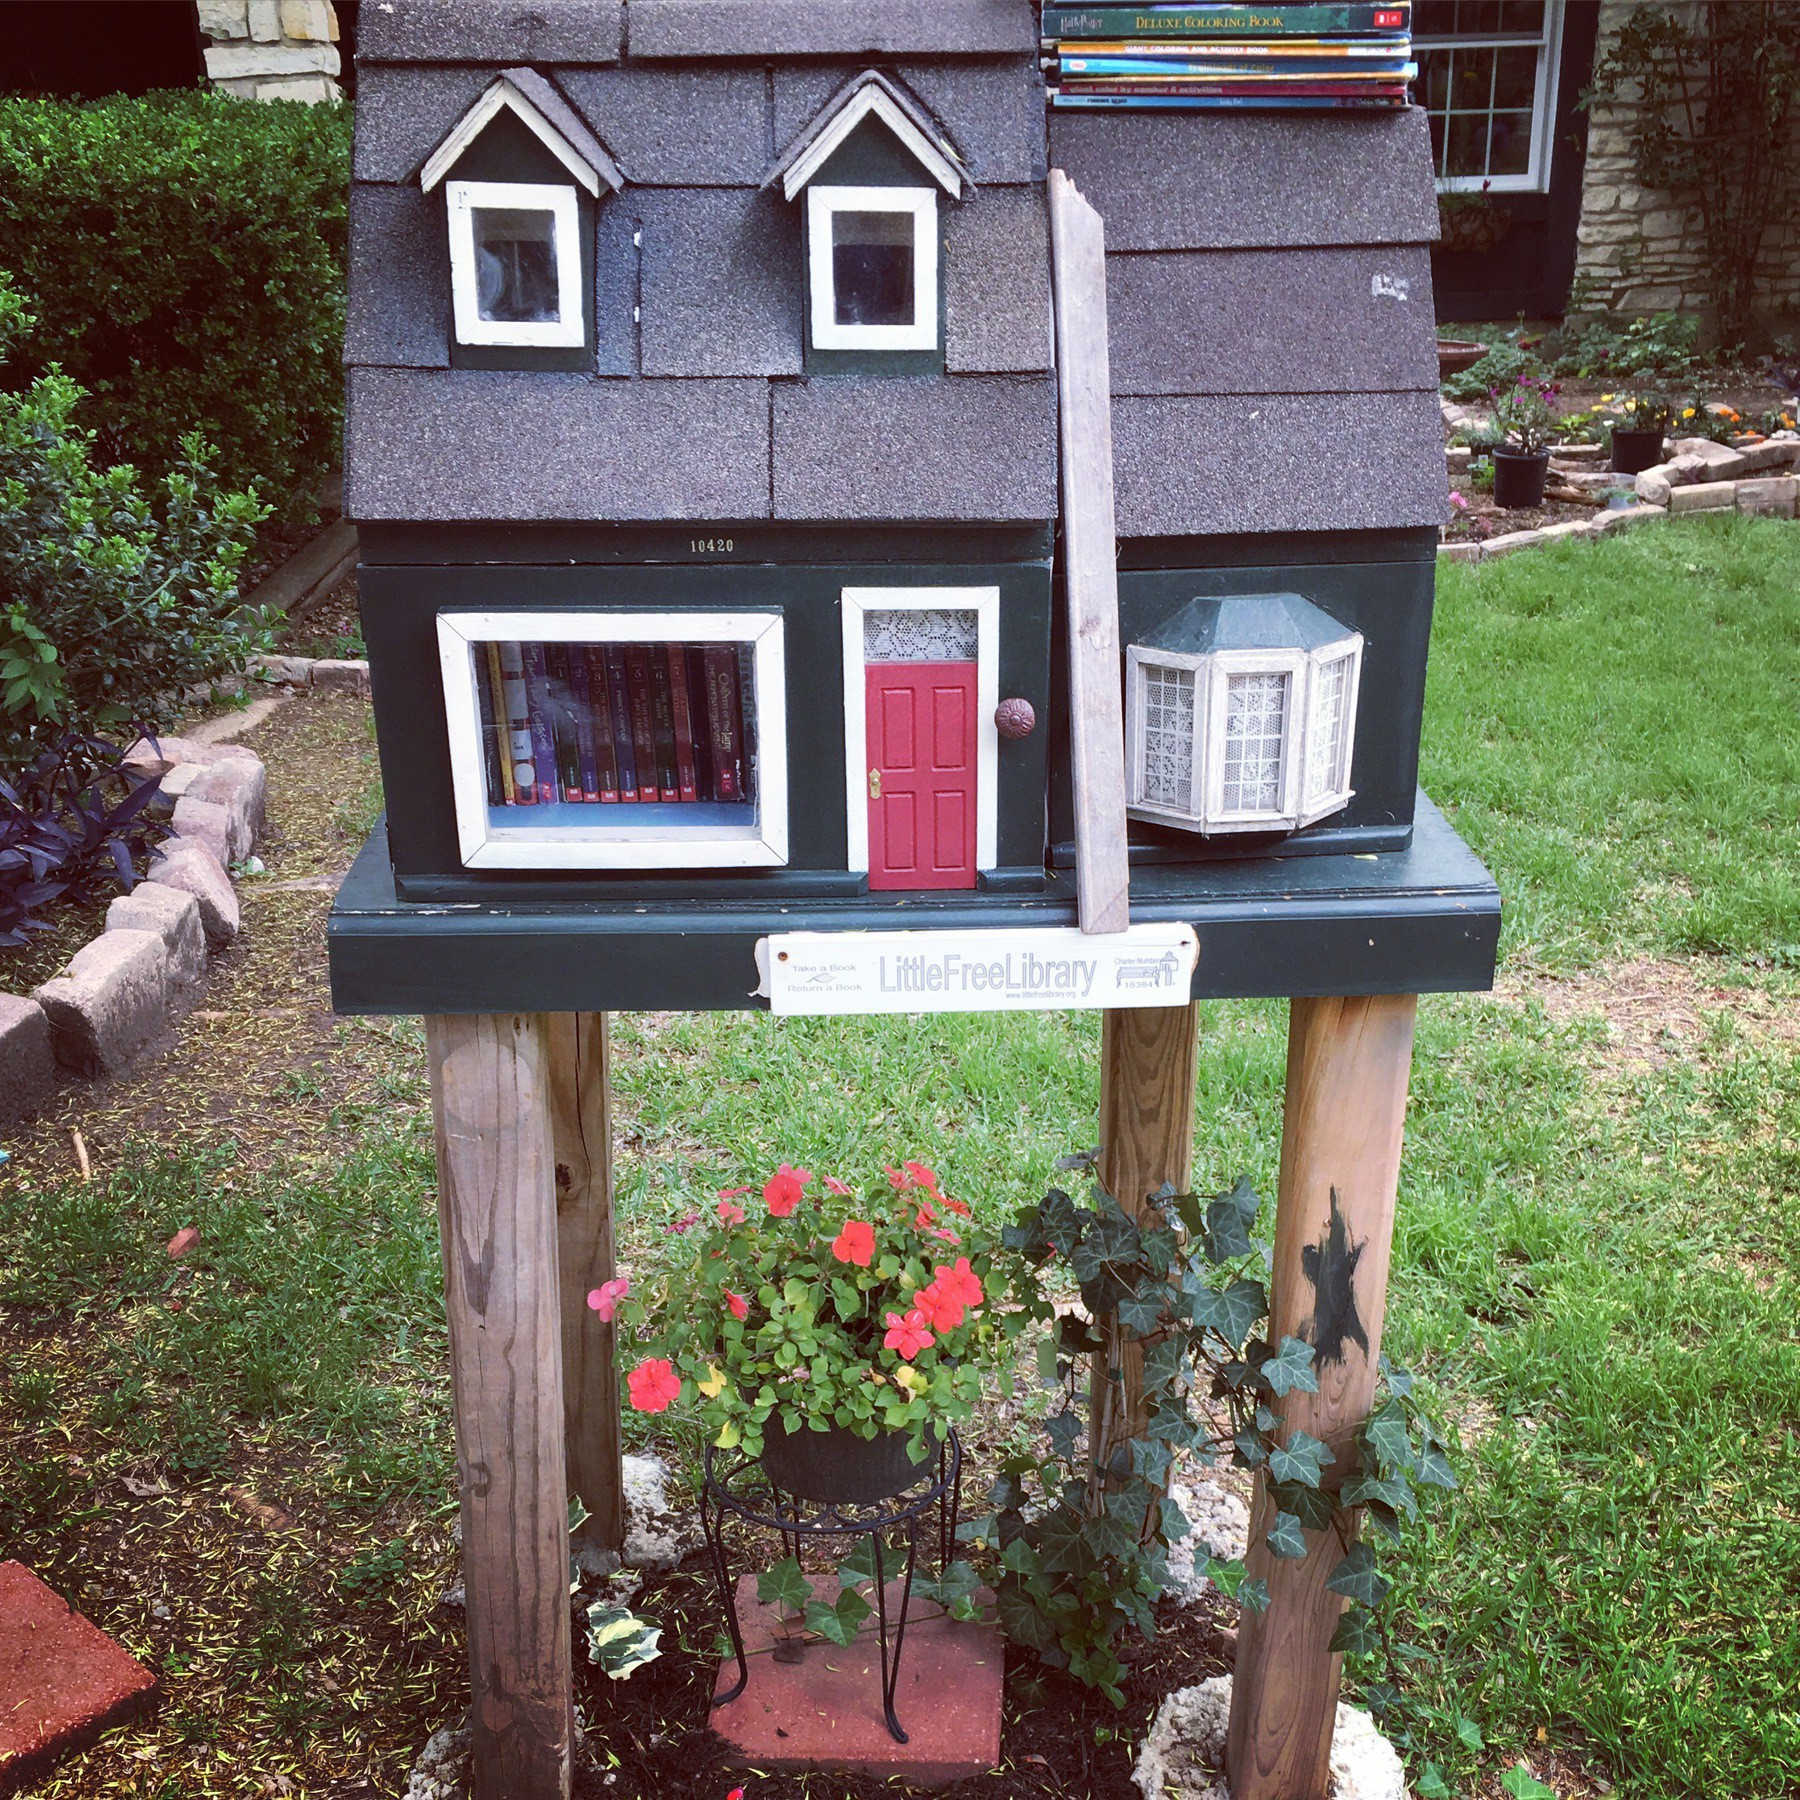 Doll house Little Free Library